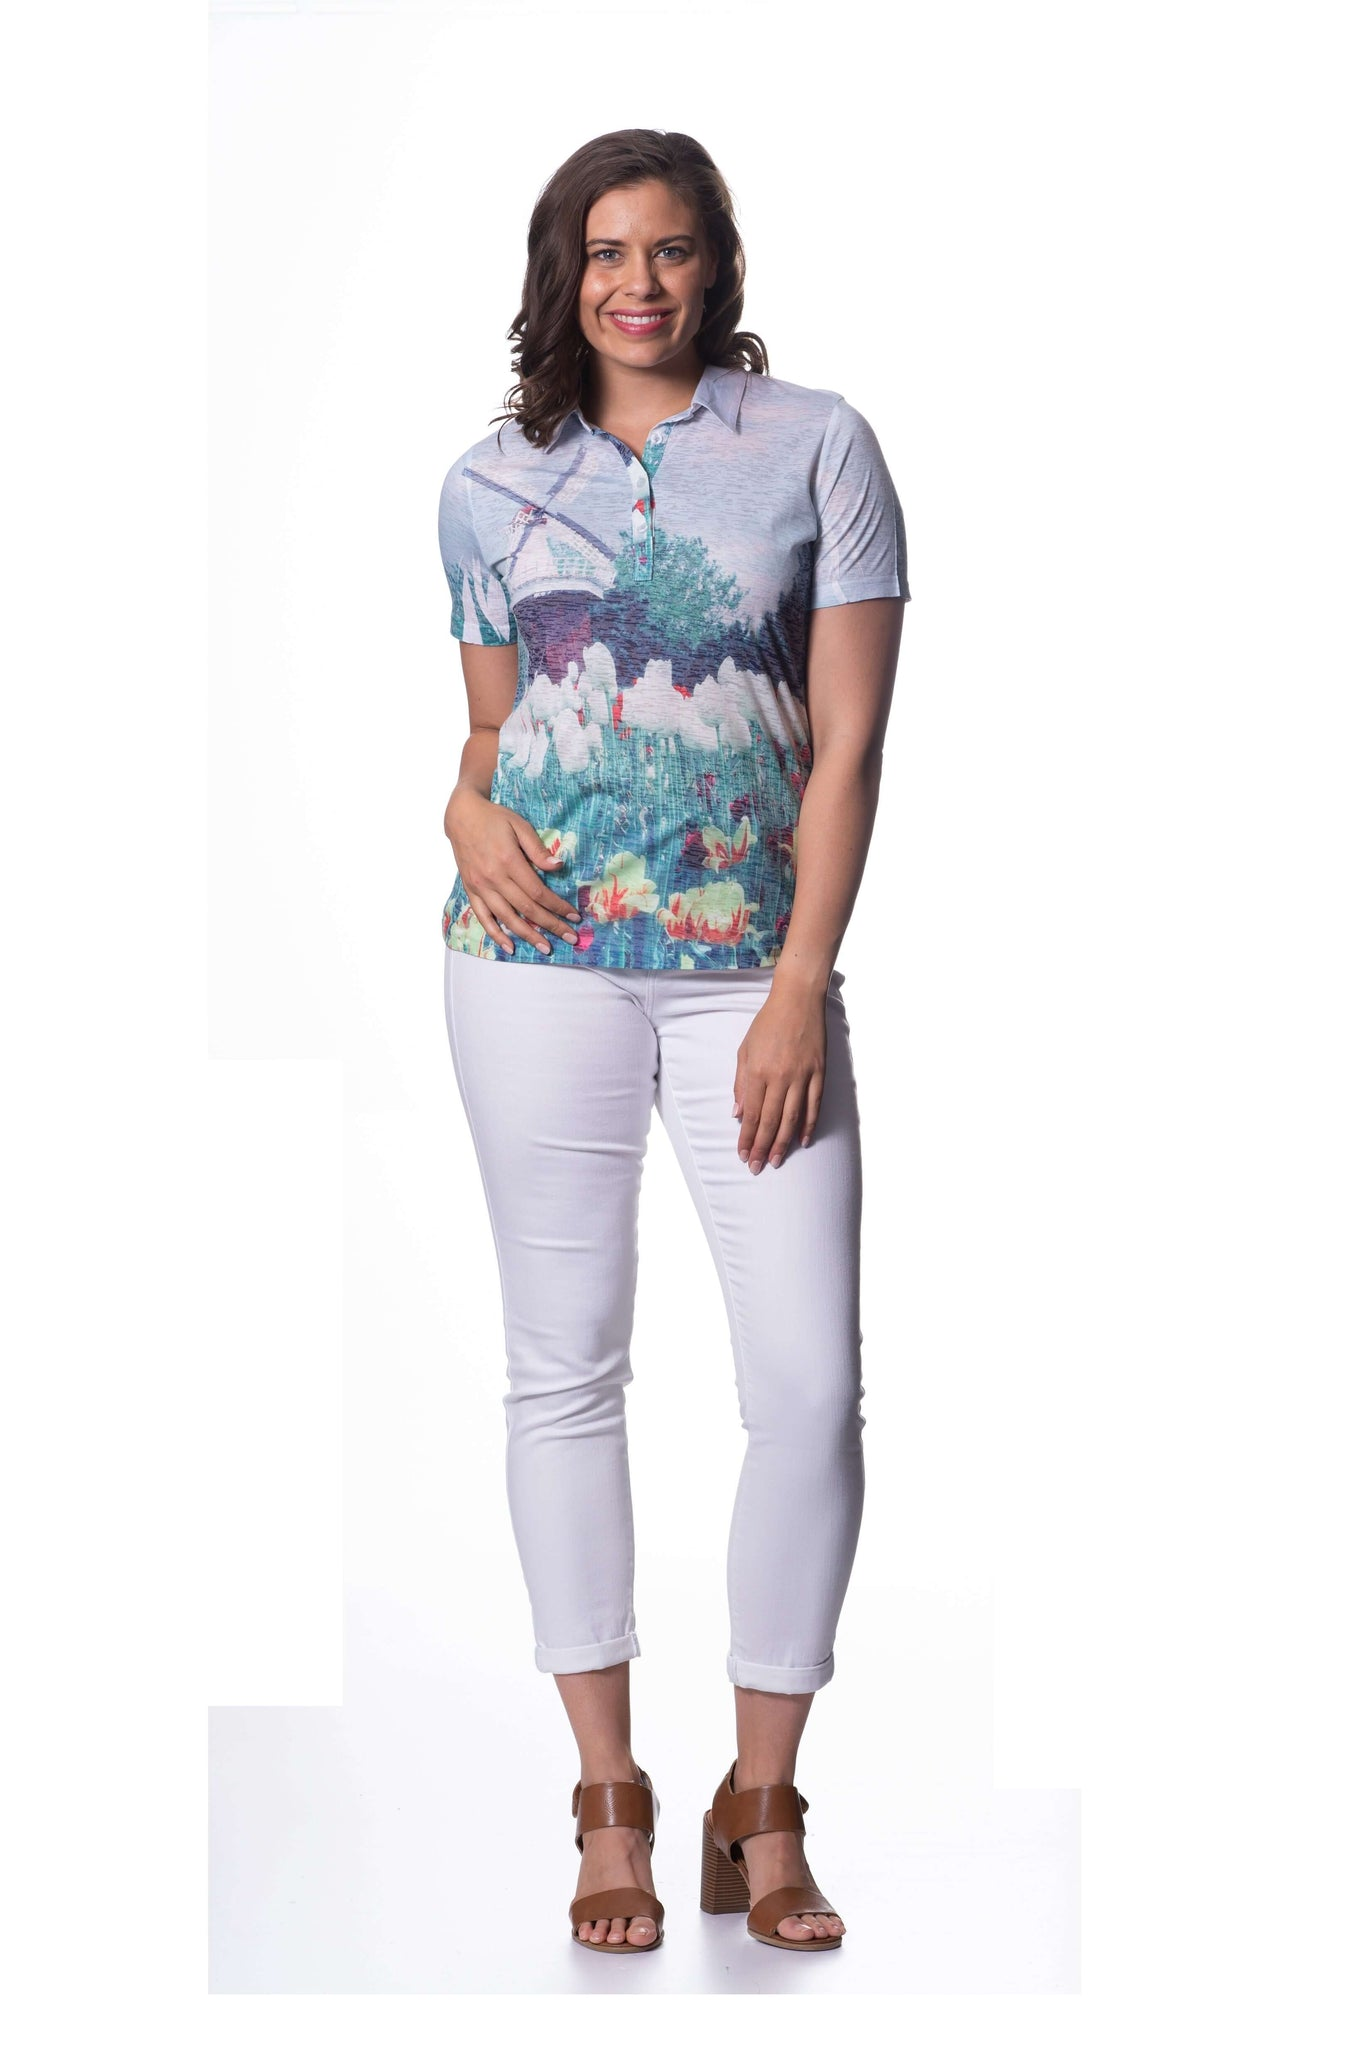 S1858456 - Cotton Burnout Short Sleeve Top Tulip Fields